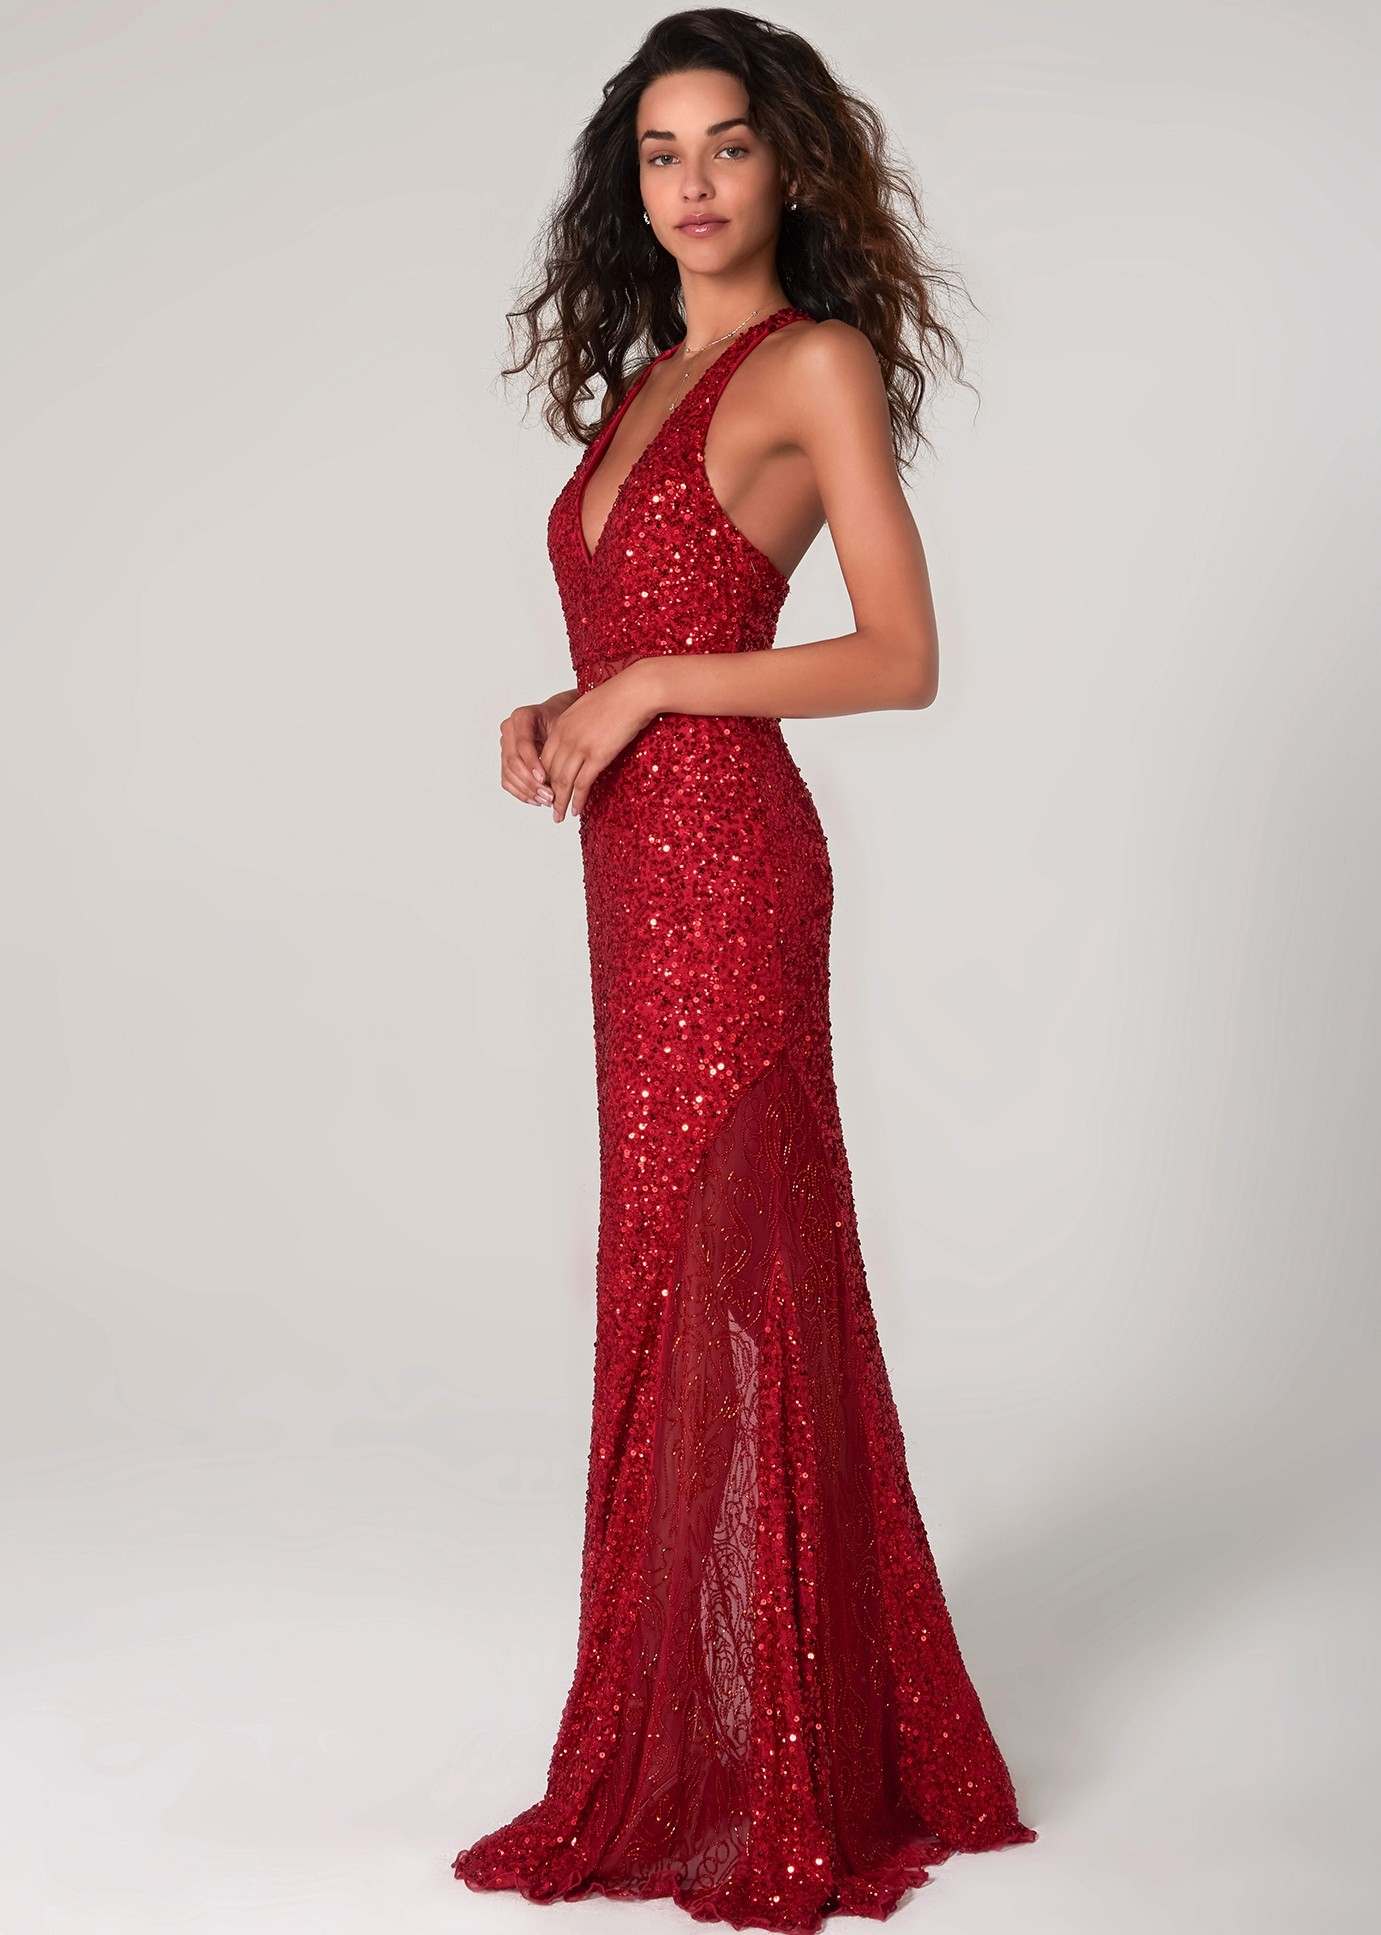 Scala 48983 Sequin Gown with Illusion Sides